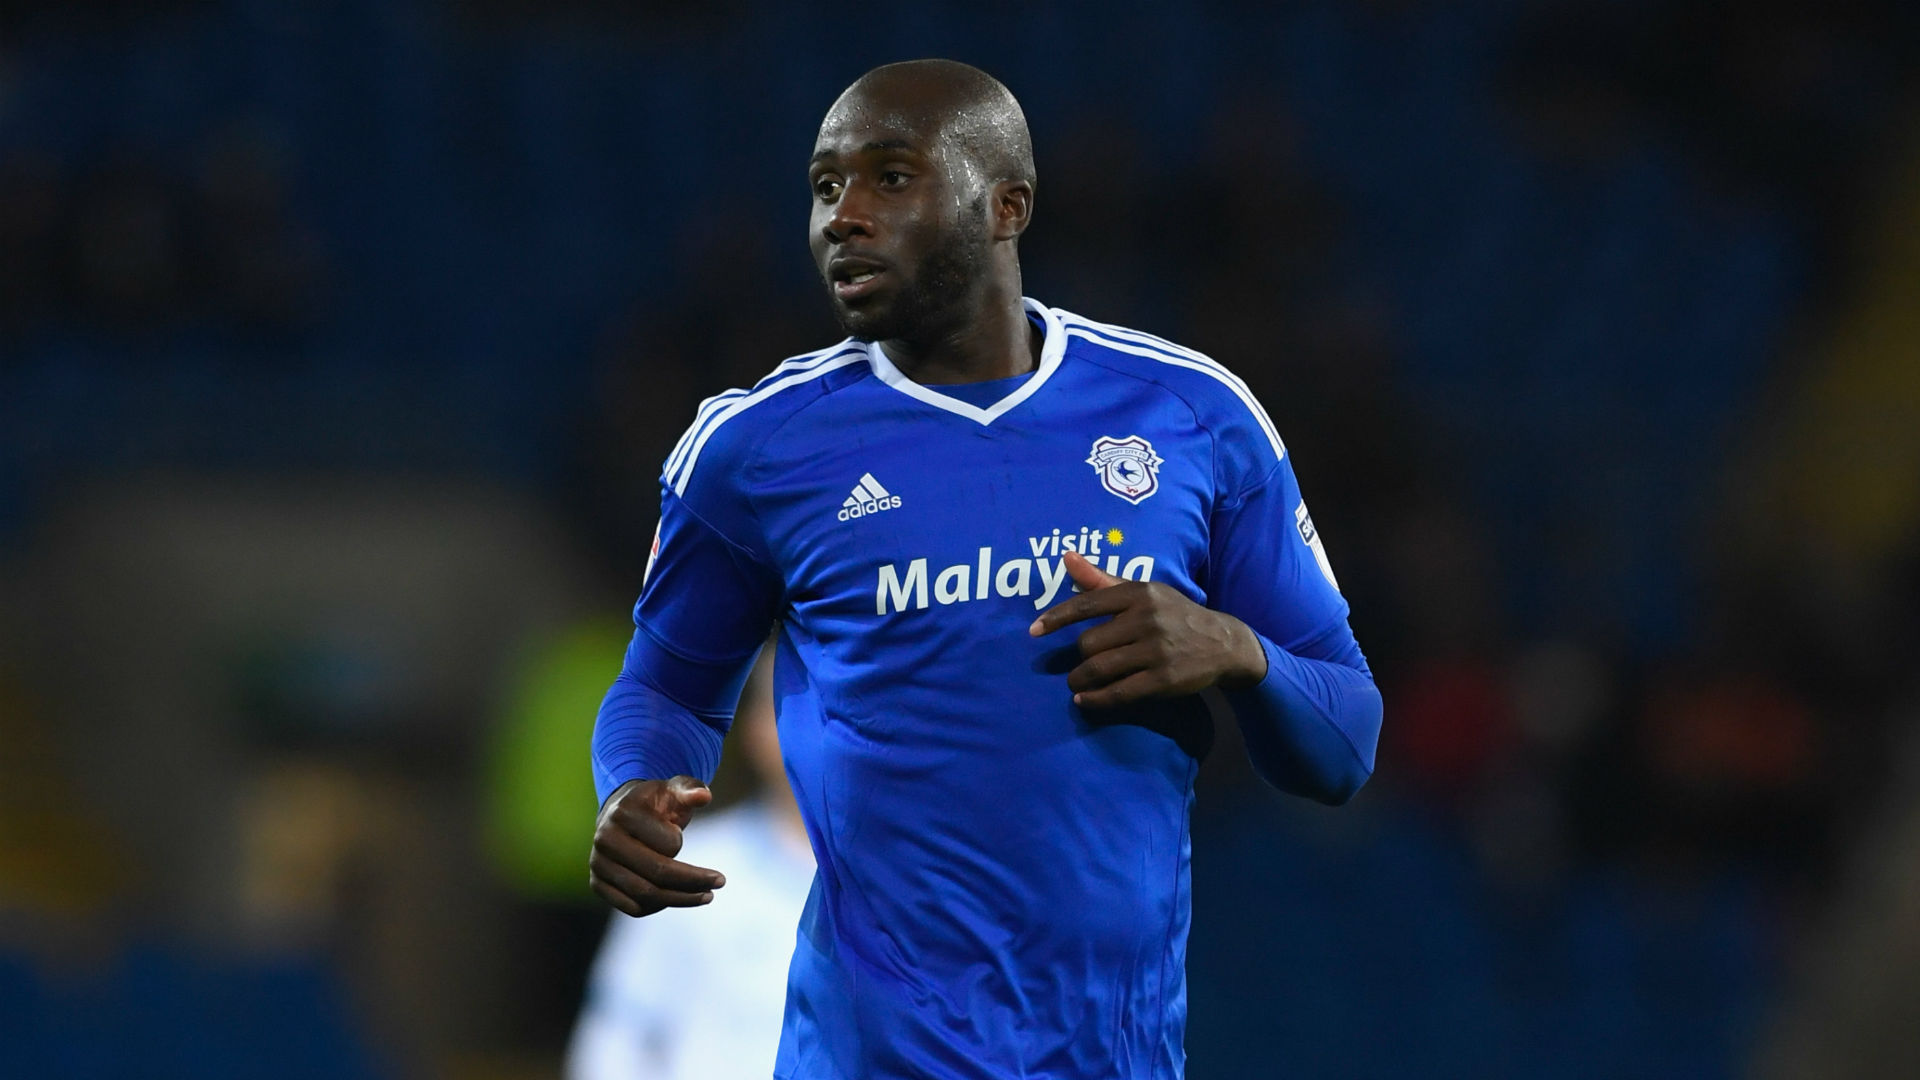 Sol Bamba: Cardiff City defender undergoing cancer treatment